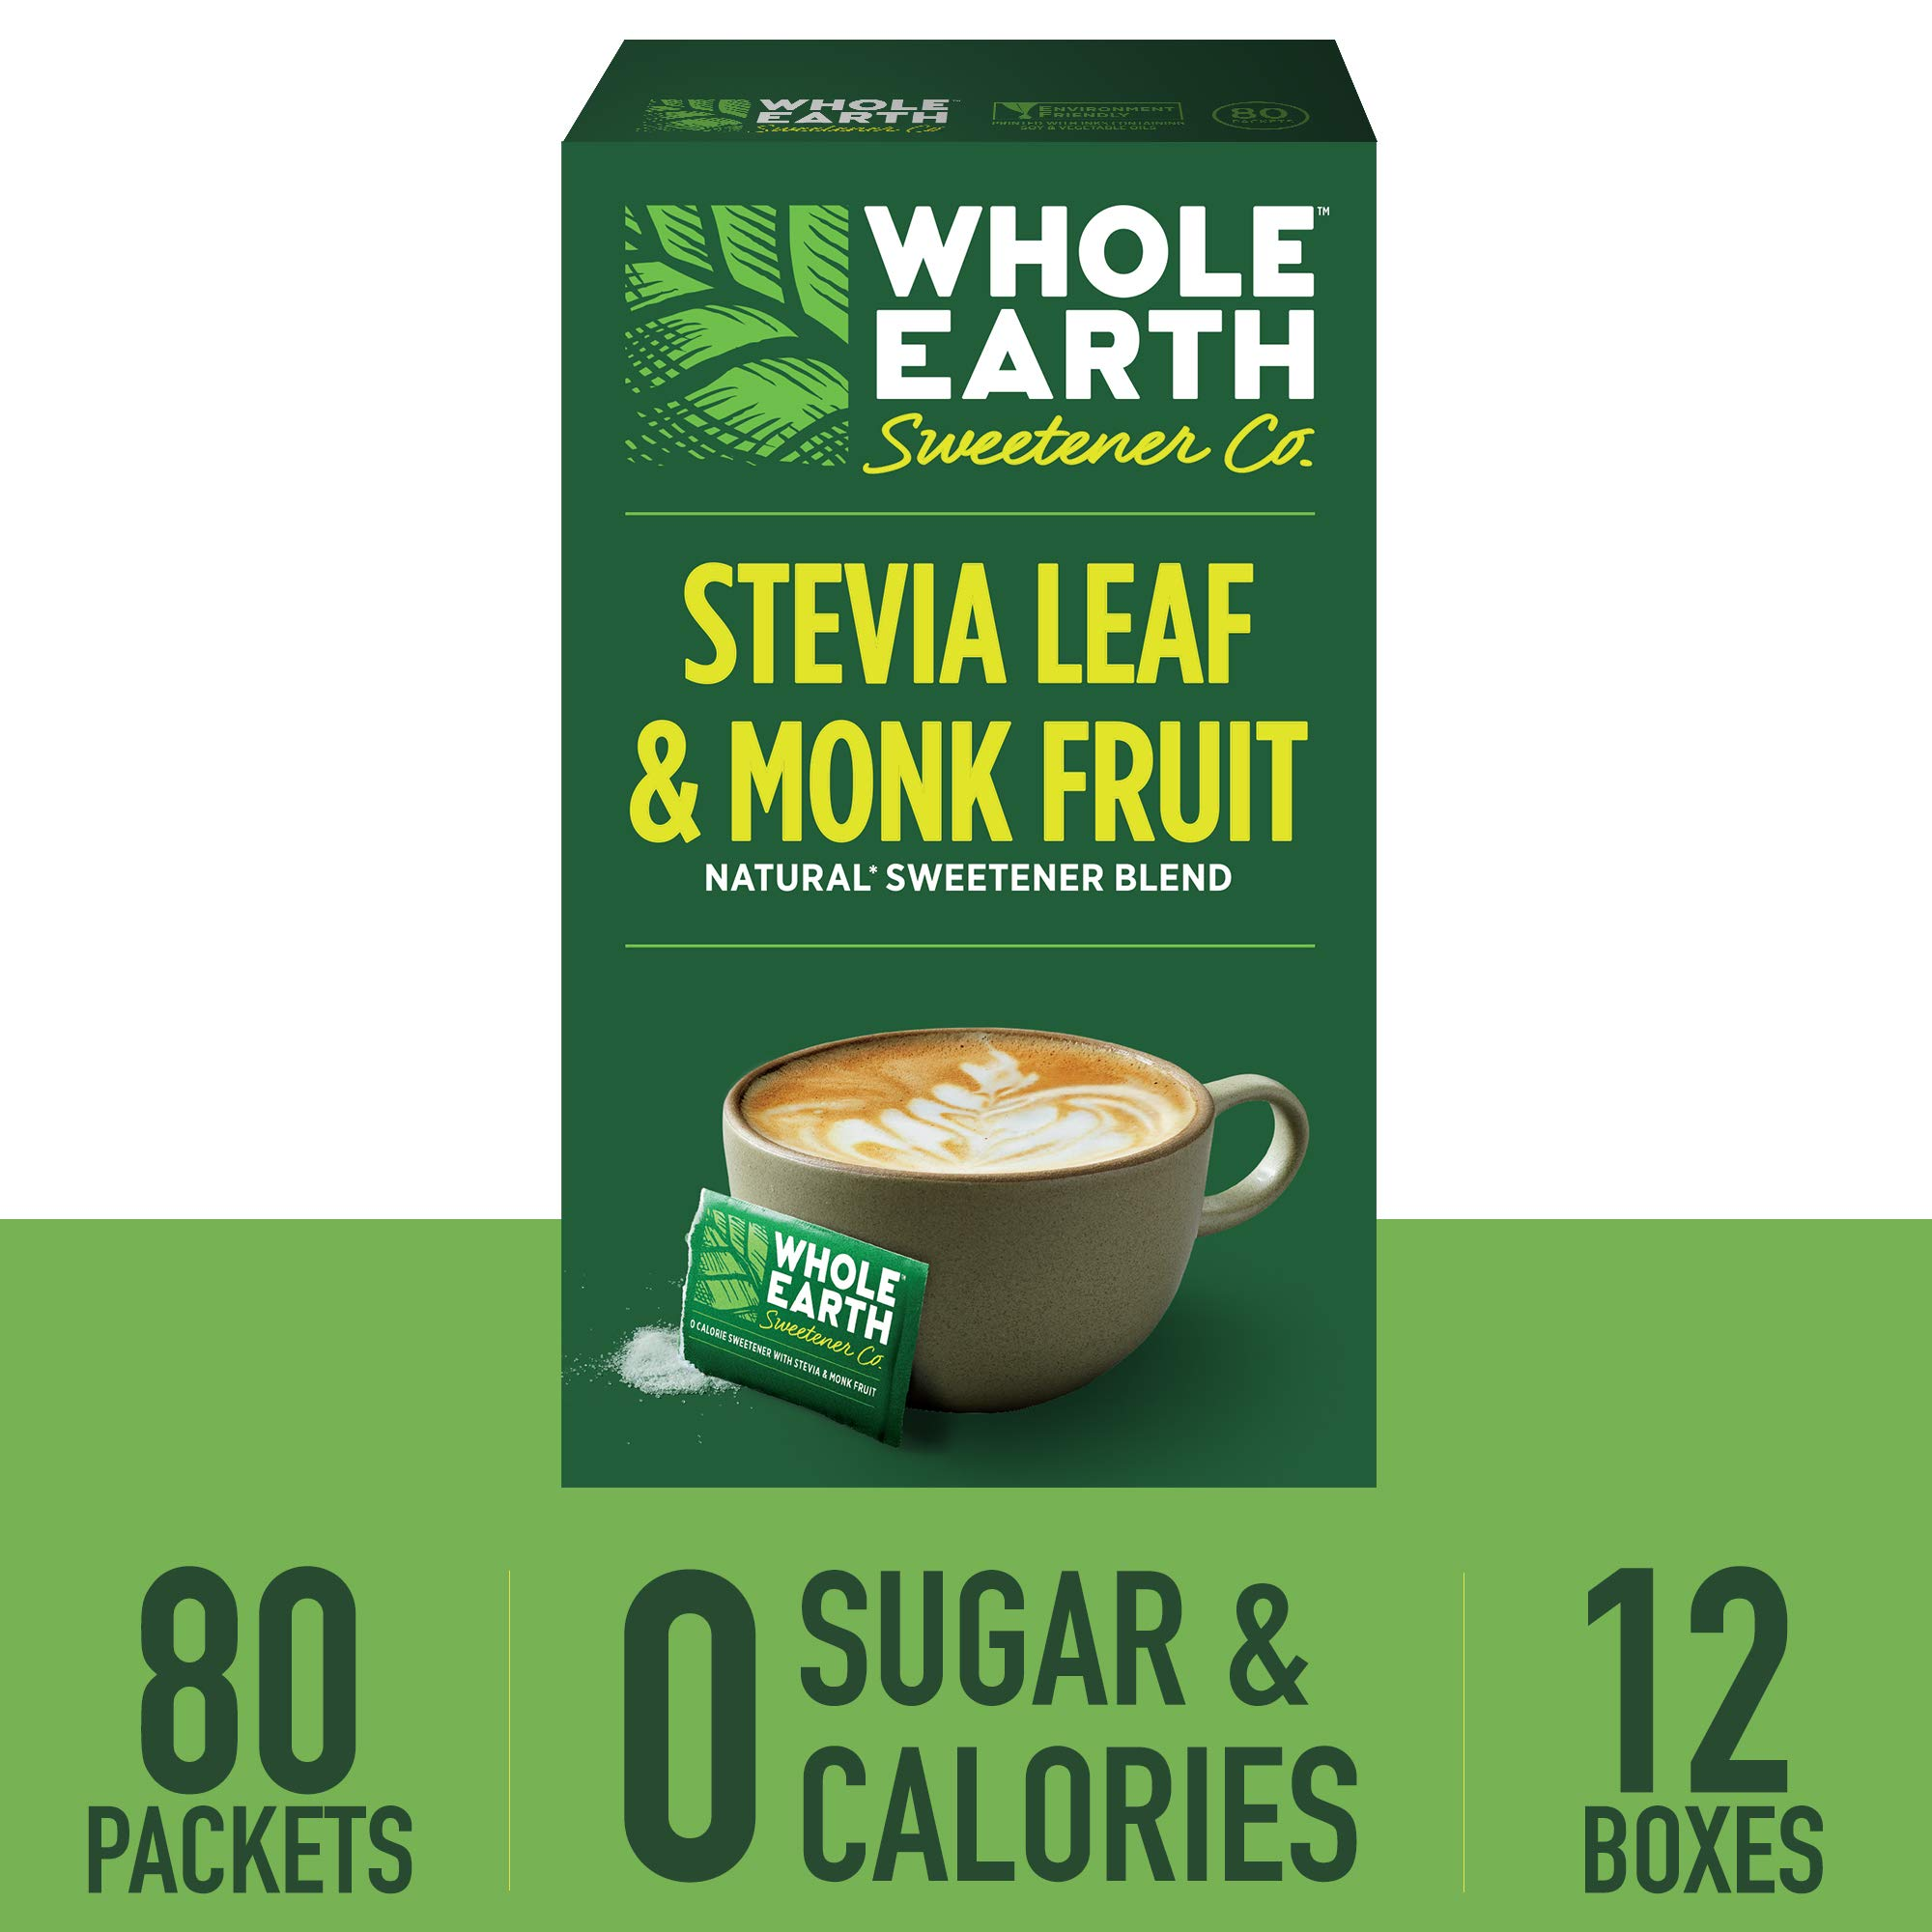 WHOLE EARTH SWEETENER CO. Stevia & Monk Fruit Sweetener, Erythritol Sweetener, Sweet Leaf Stevia Packets, Sugar Substitute, Natural Sweetener, 80 Count (Pack of 12) by Whole Earth Sweetener Company